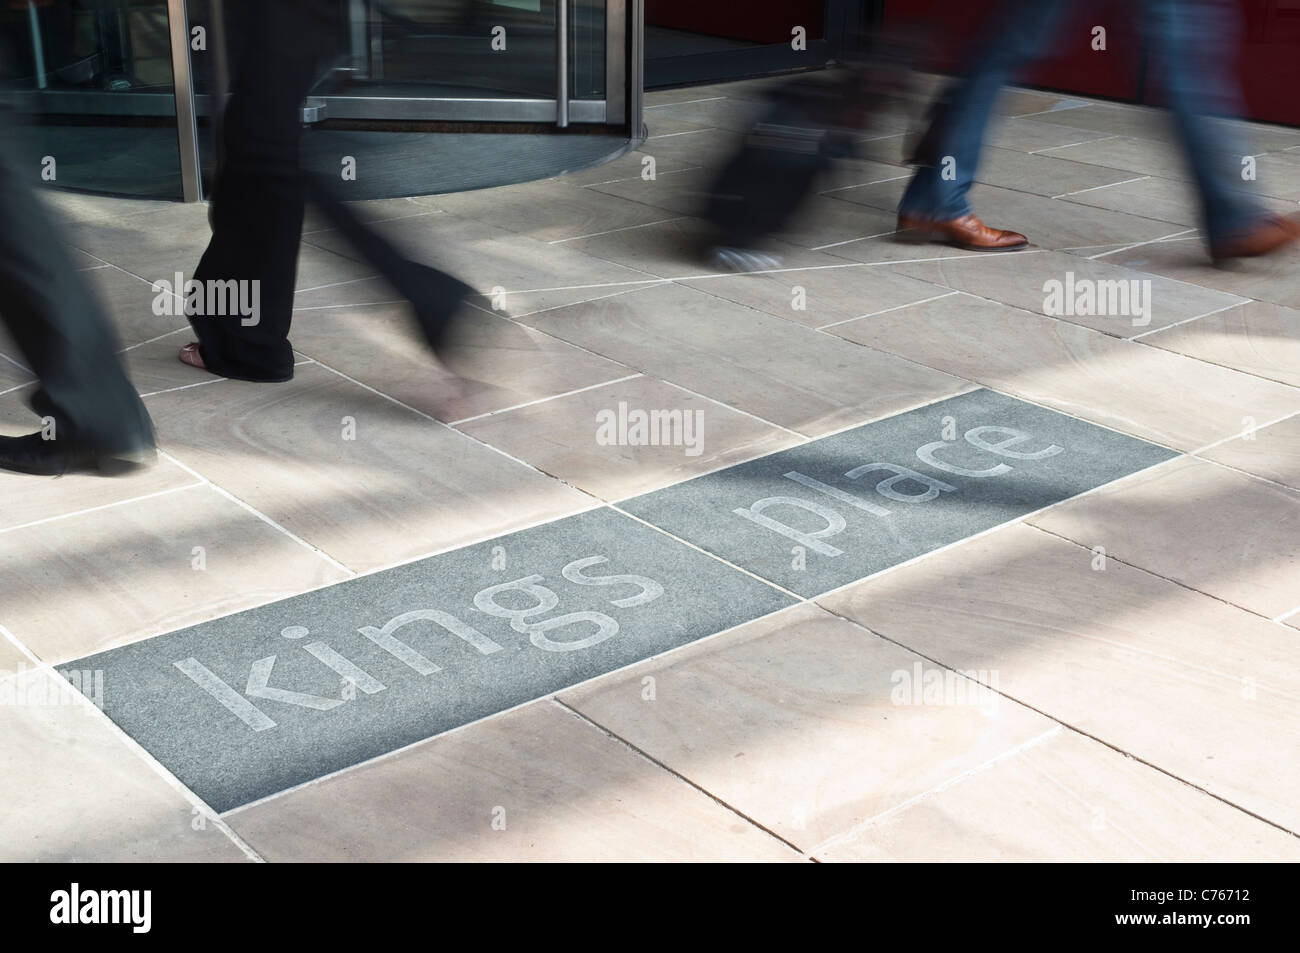 The entrance to Kings Place in London, with revolving doors, the blurred feet of passing people, and the building - Stock Image